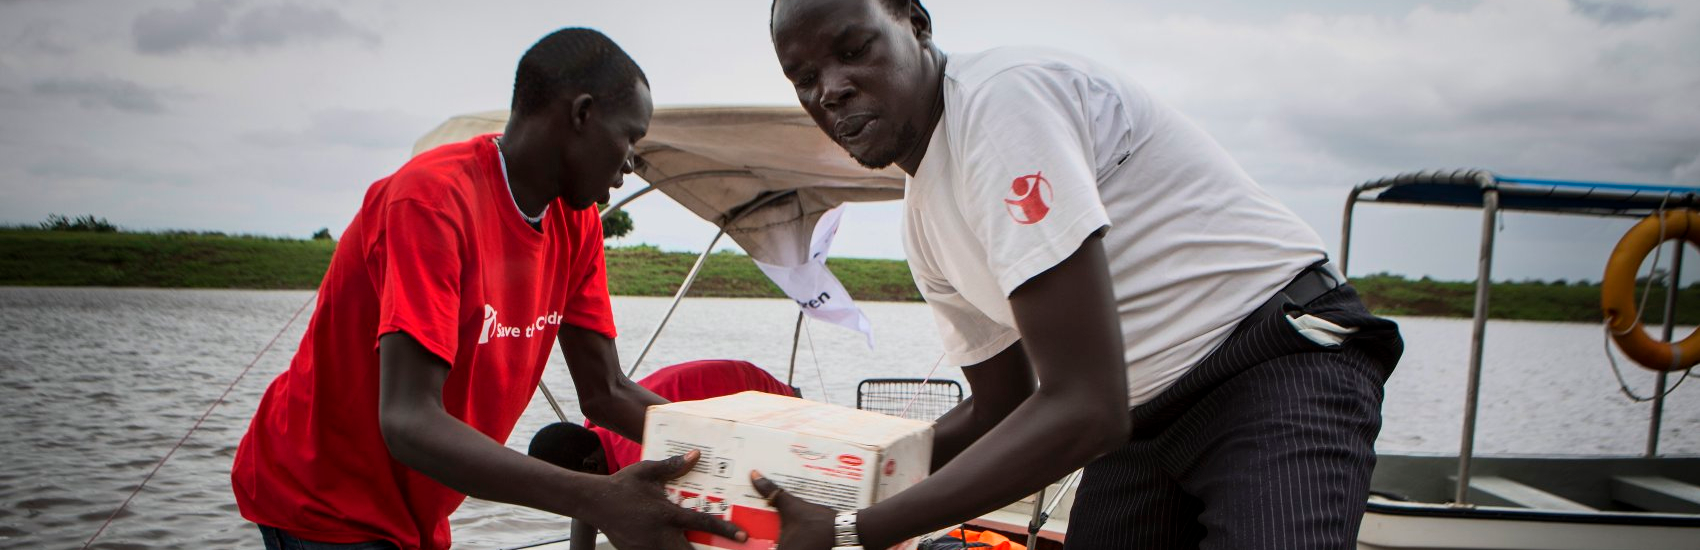 Save the Children field staff offloading a boat with food supplements for malnourished children in remote villages in Akobo, South Sudan. Photo Credit: Jonathan Hyams/Save the Children 2014.